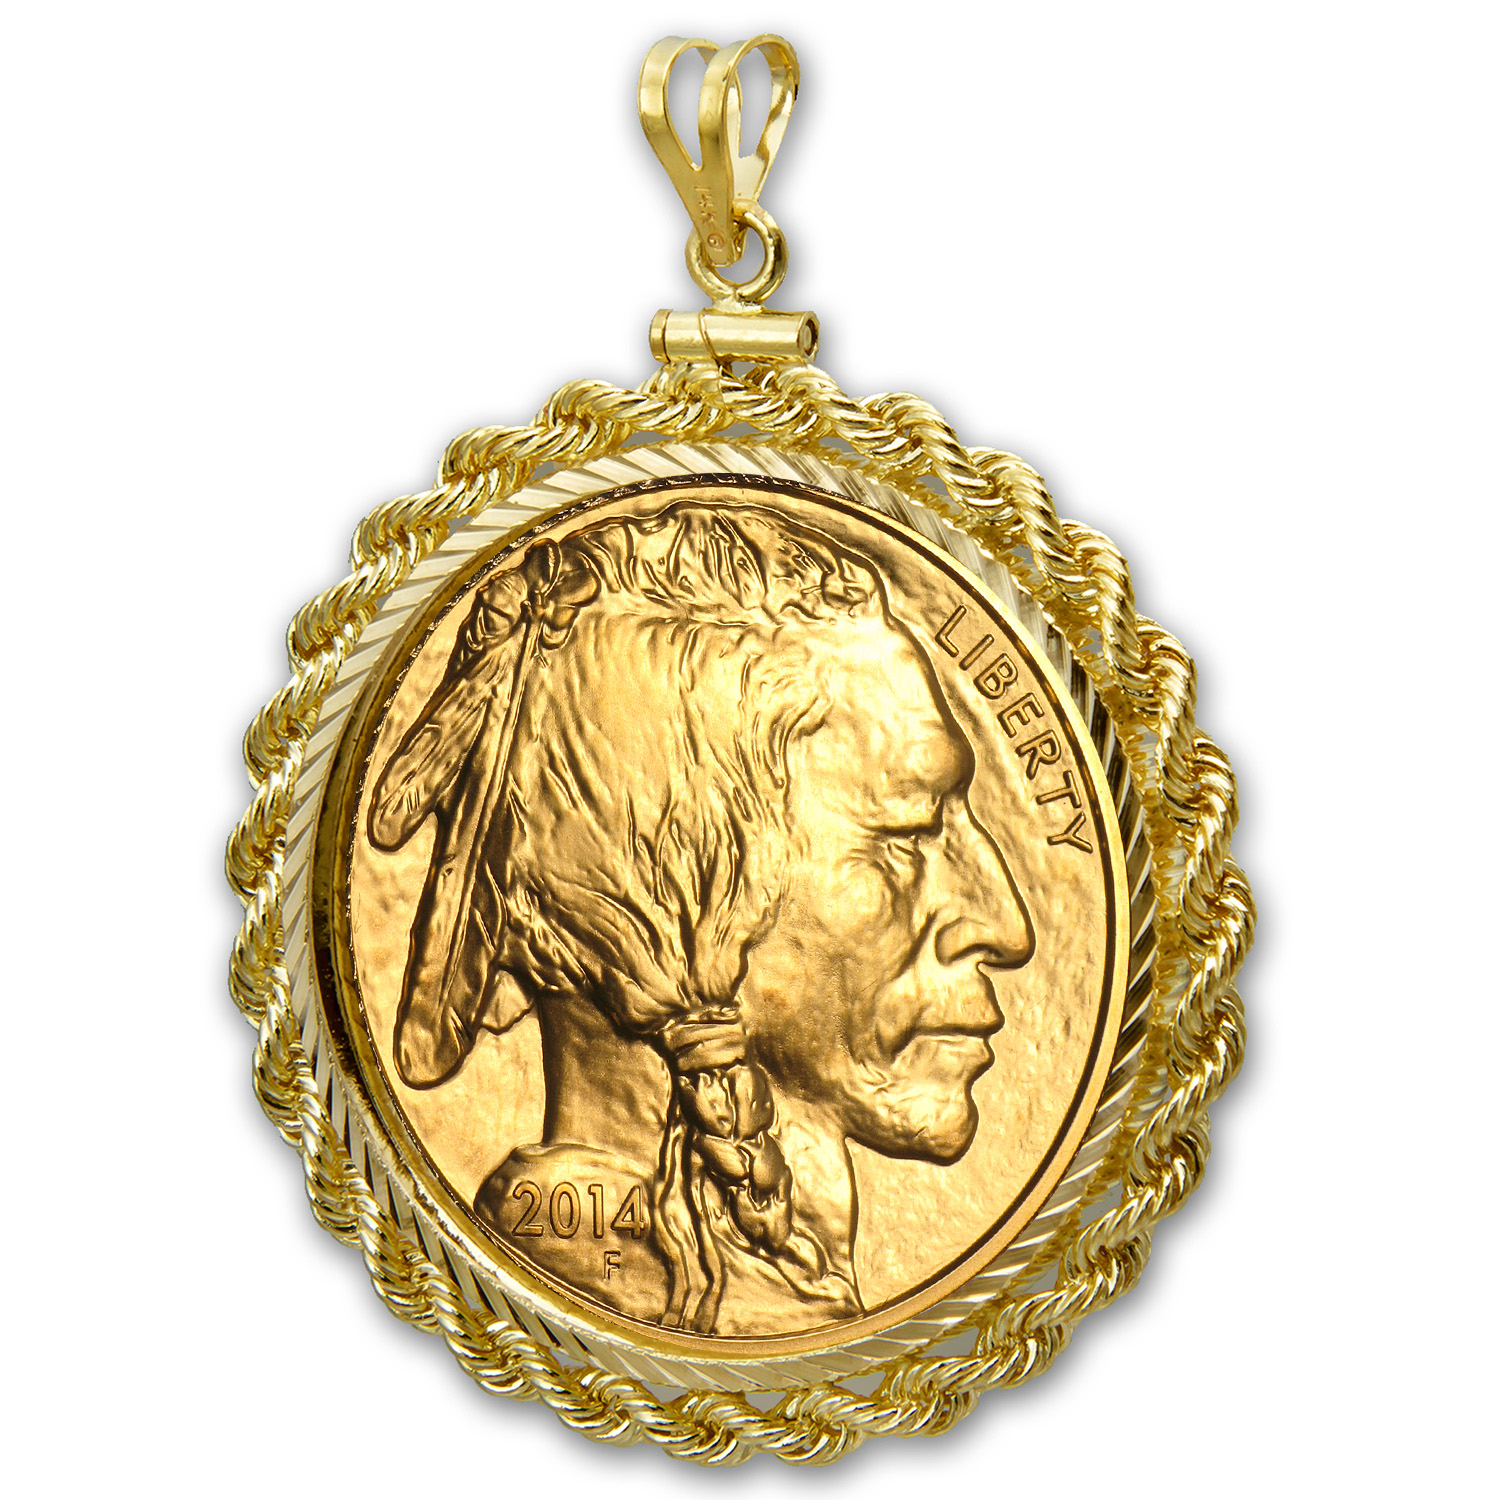 2014 1 oz Gold Buffalo Pendant (Rope-Diamond Cut ScrewTop Bezel)